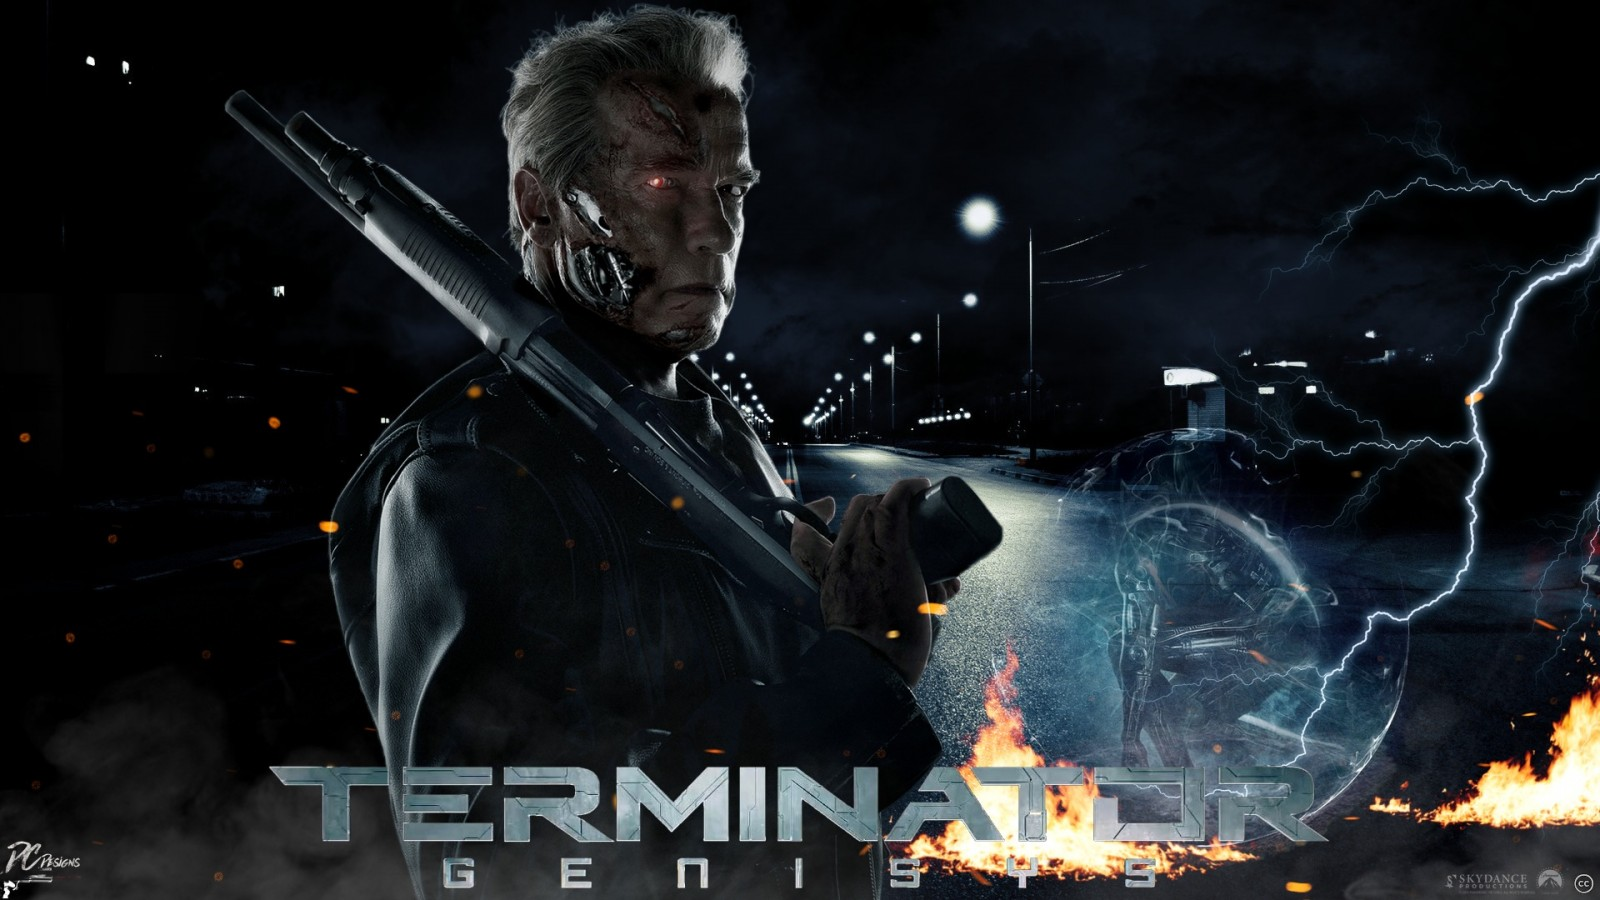 Iphone 5 Star Wars Wallpaper Terminator Genisys Arnold Wallpapers Hd Wallpapers Id